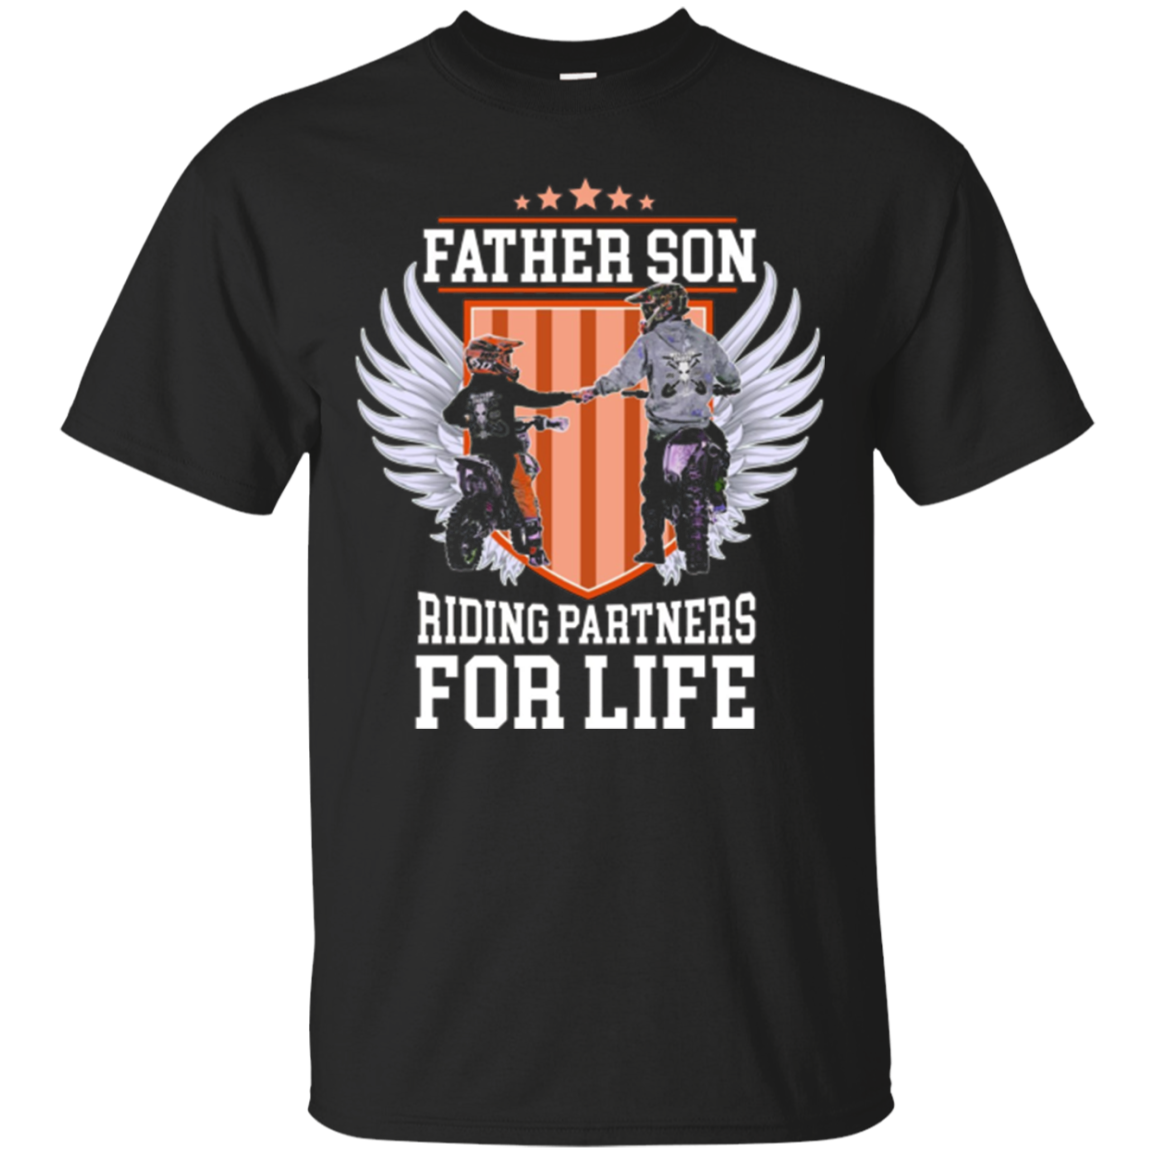 Motocross Tees -Father Son Riding Partners For Life T-Shirt